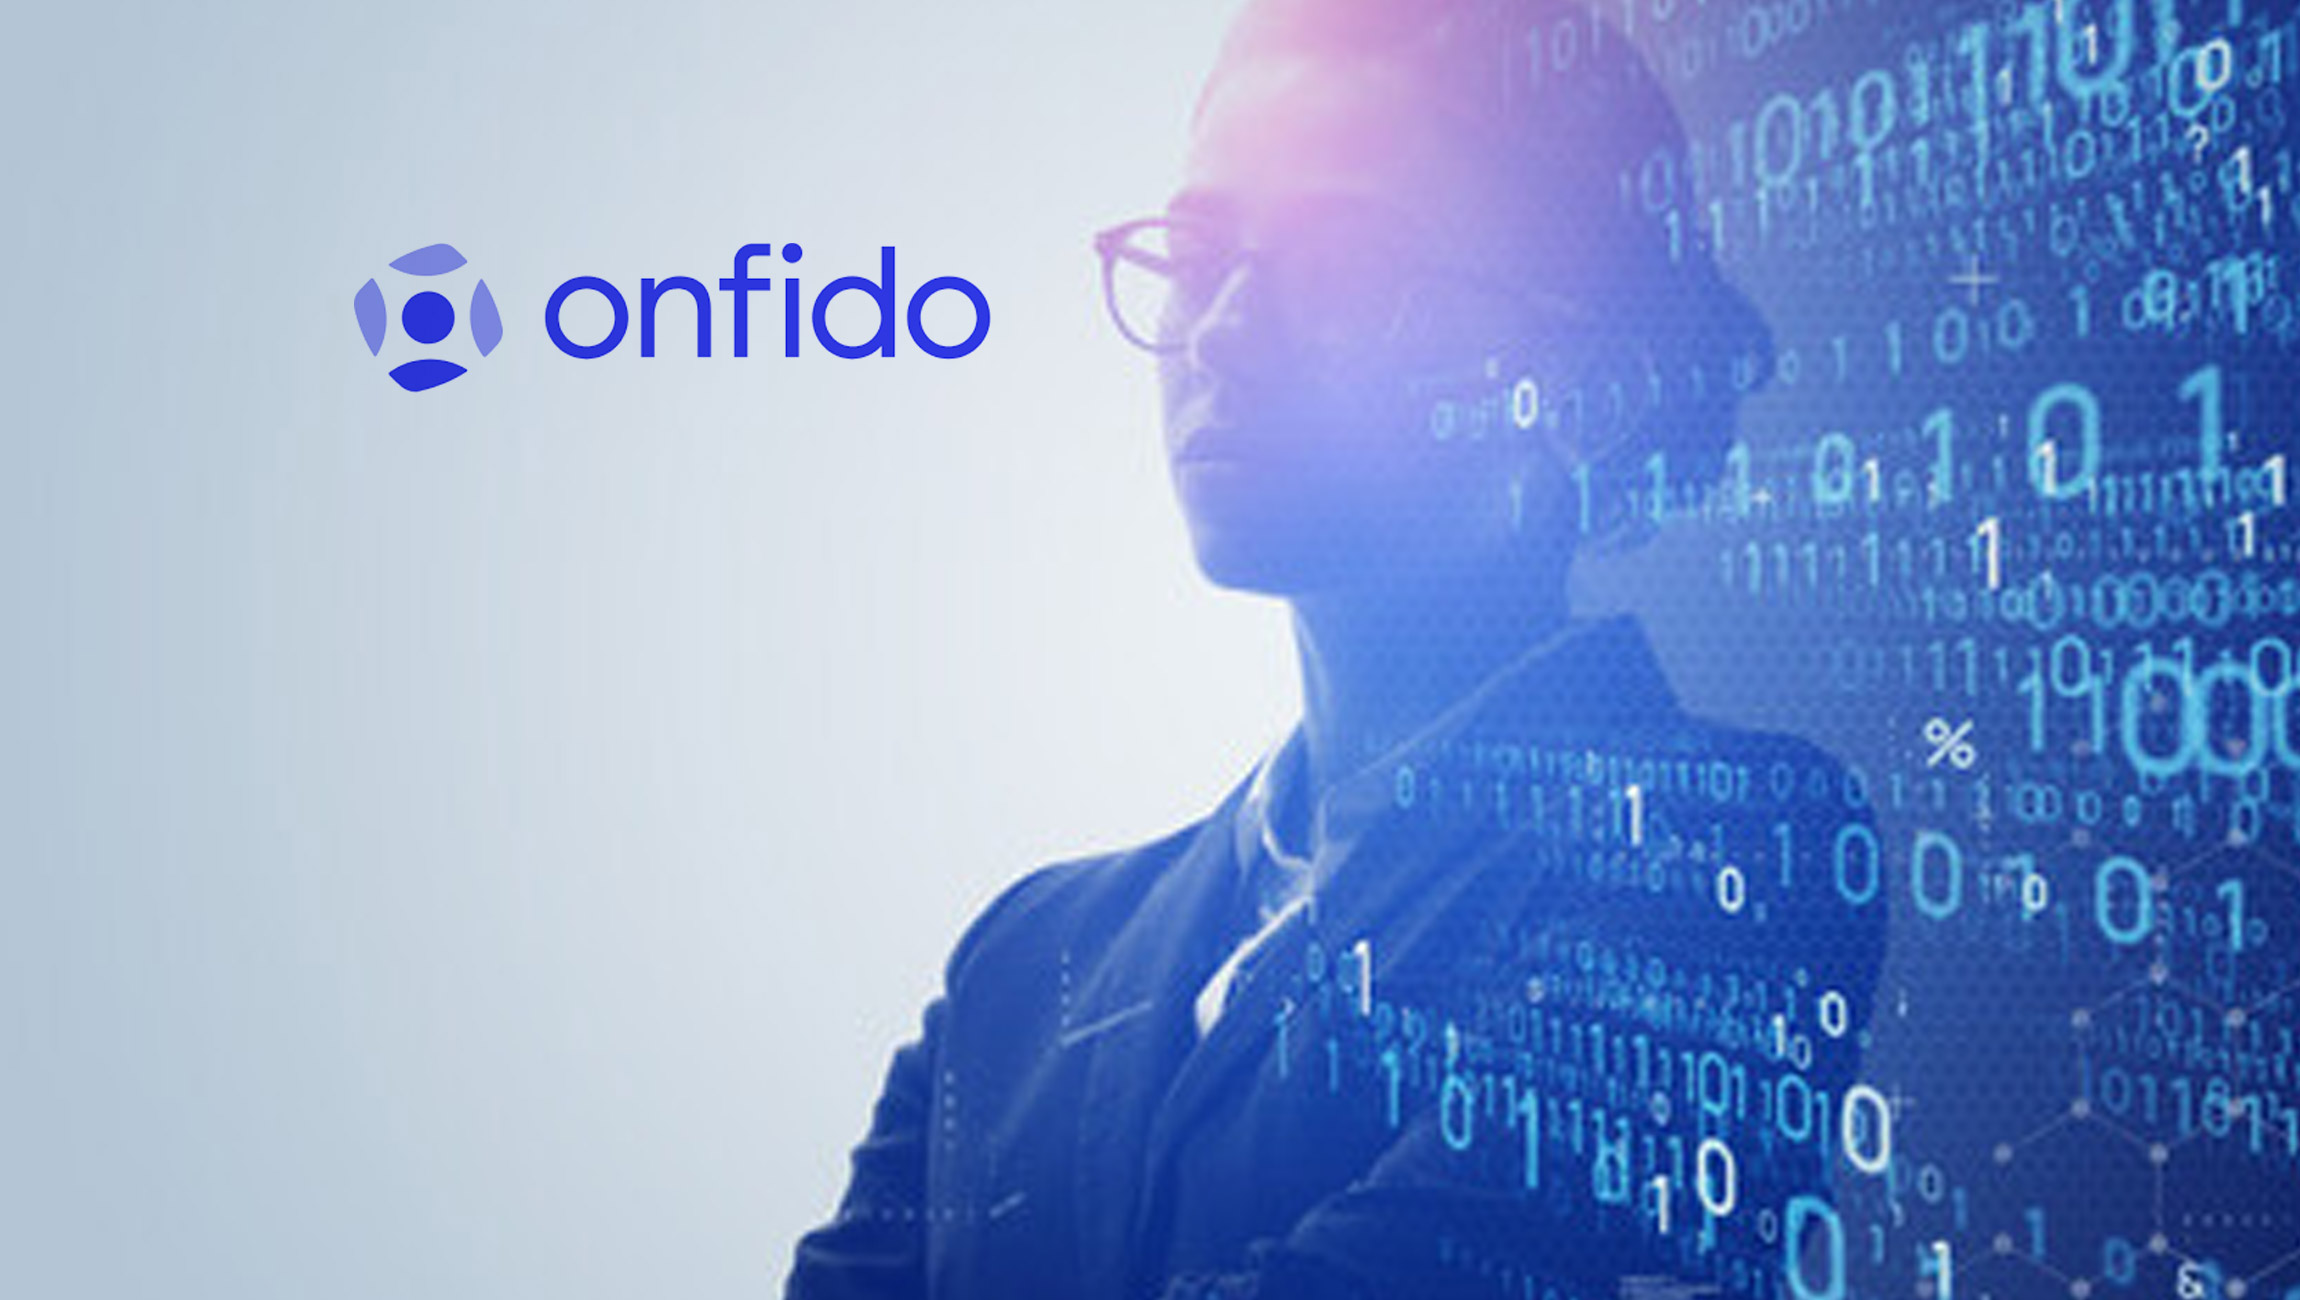 Onfido Reaches New Heights With Company's Best Quarterly Revenue Earnings to Date 1